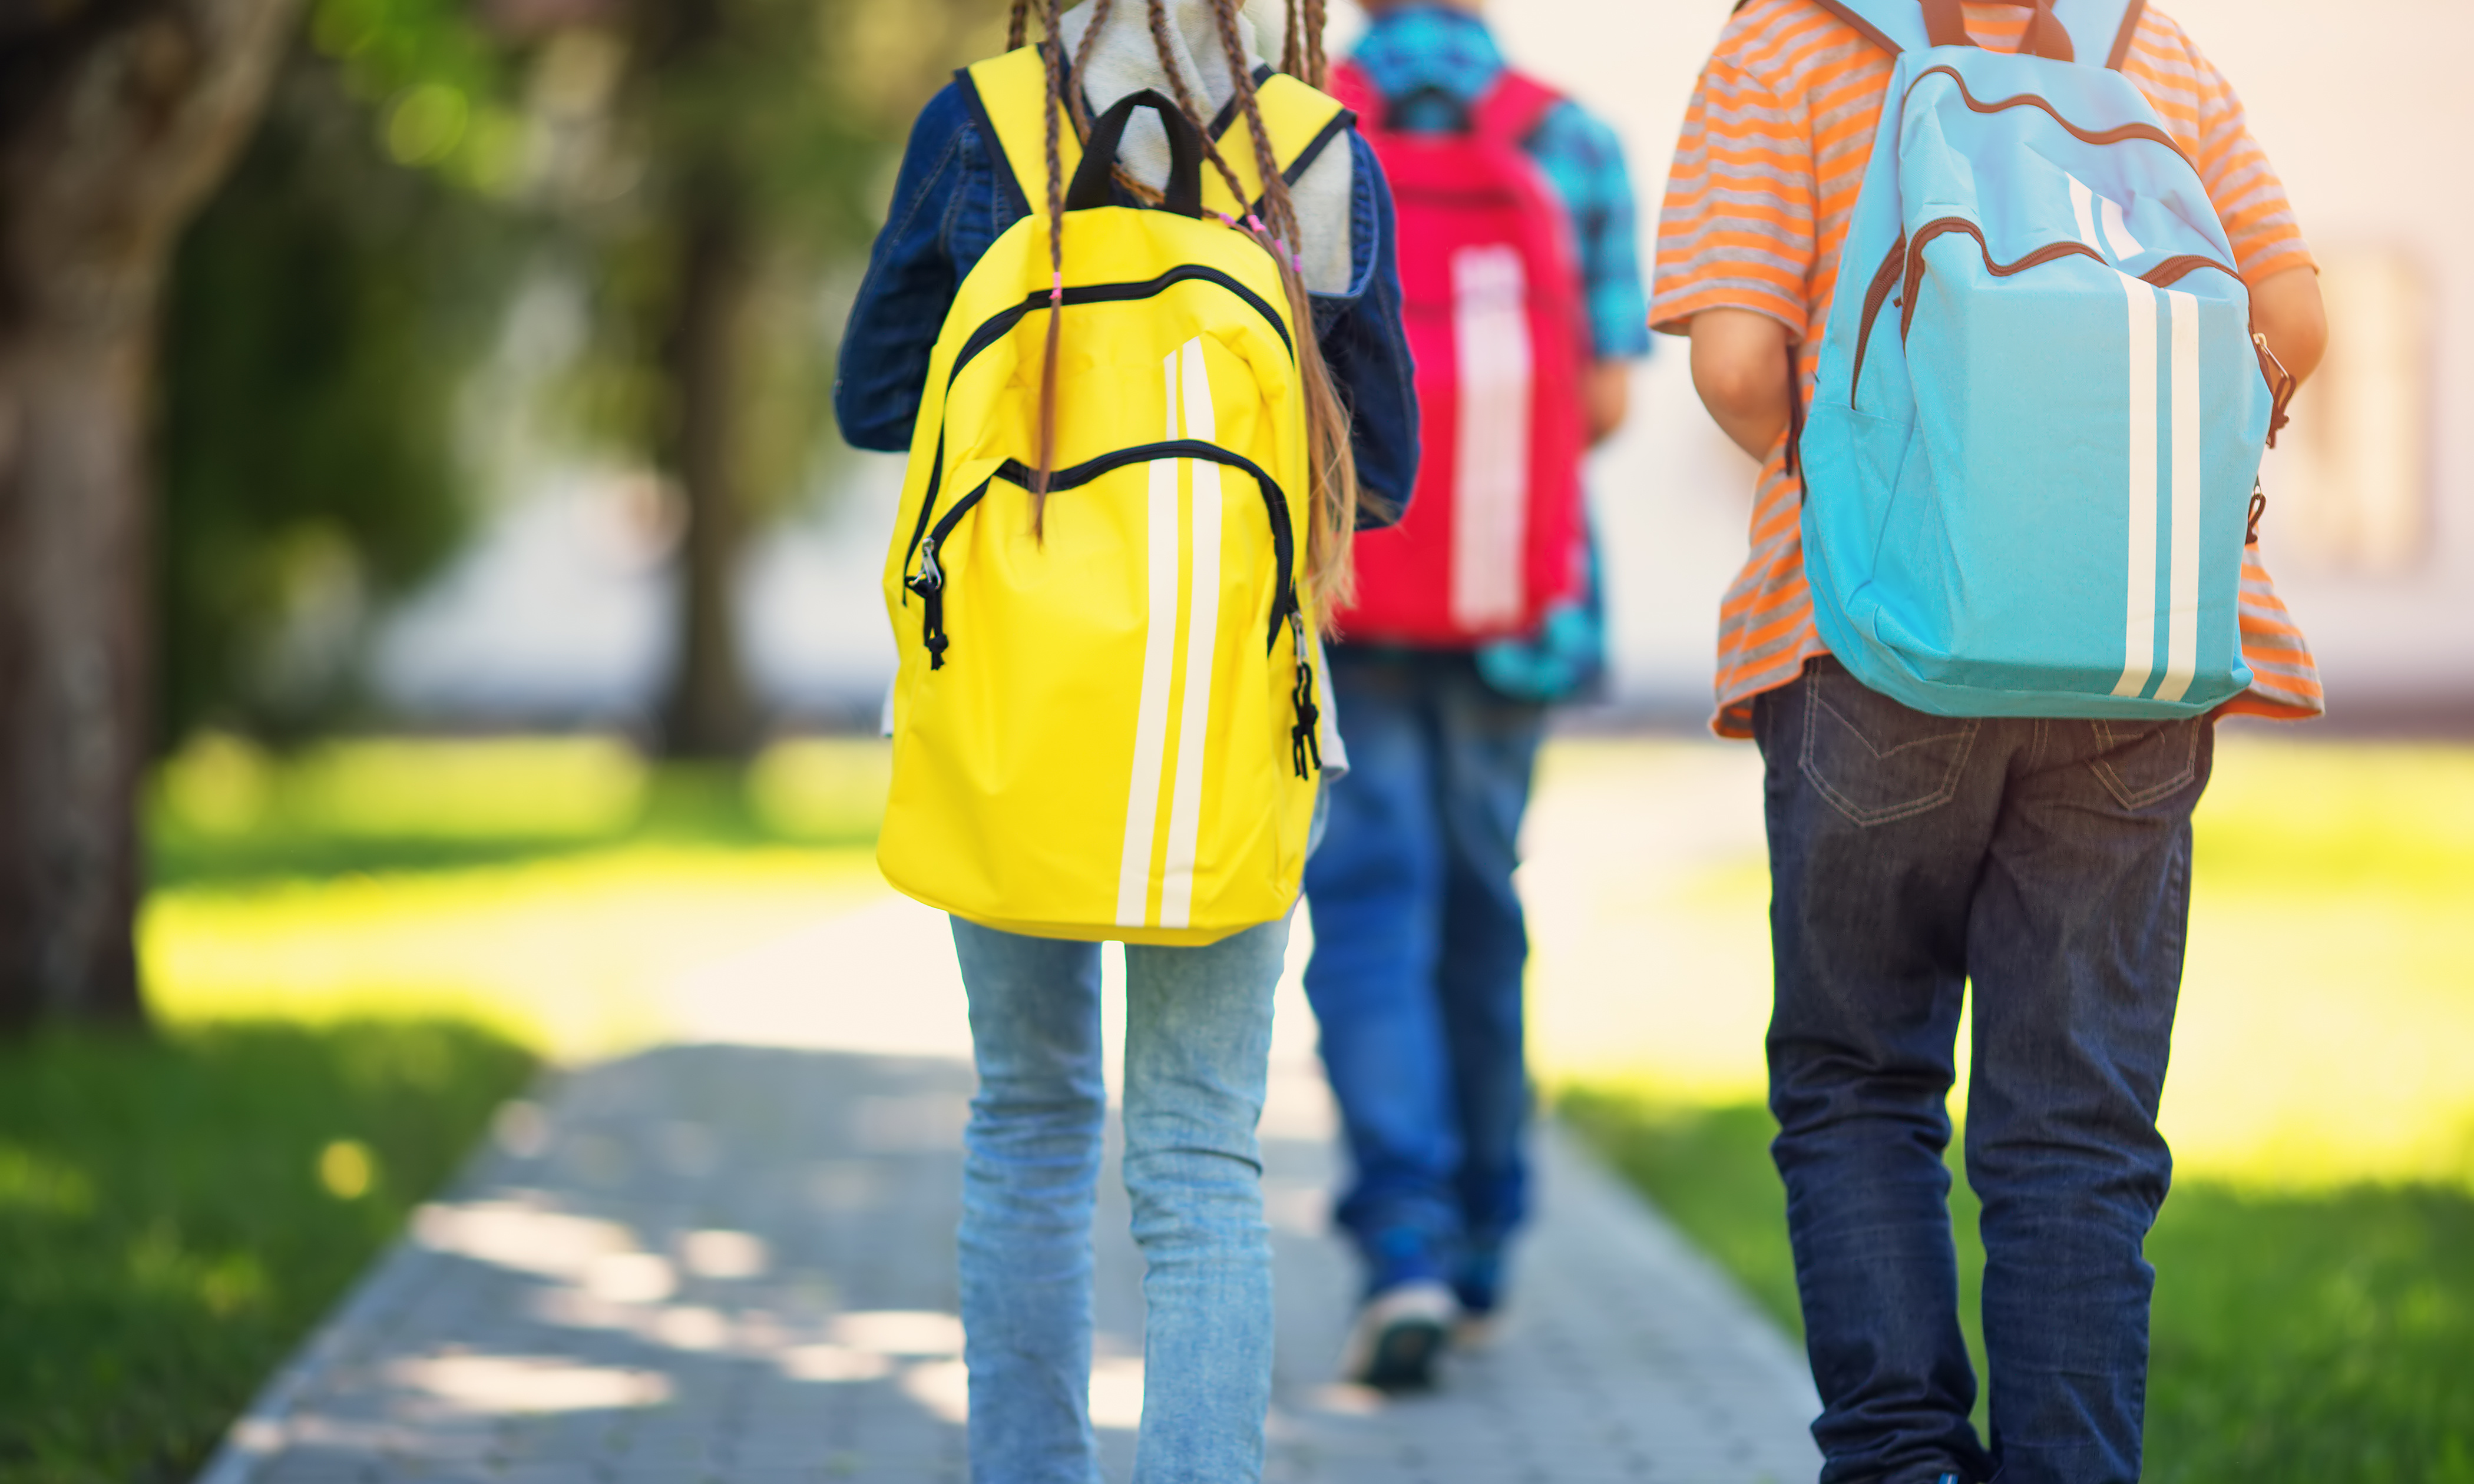 How to wear backpack to avoid pain